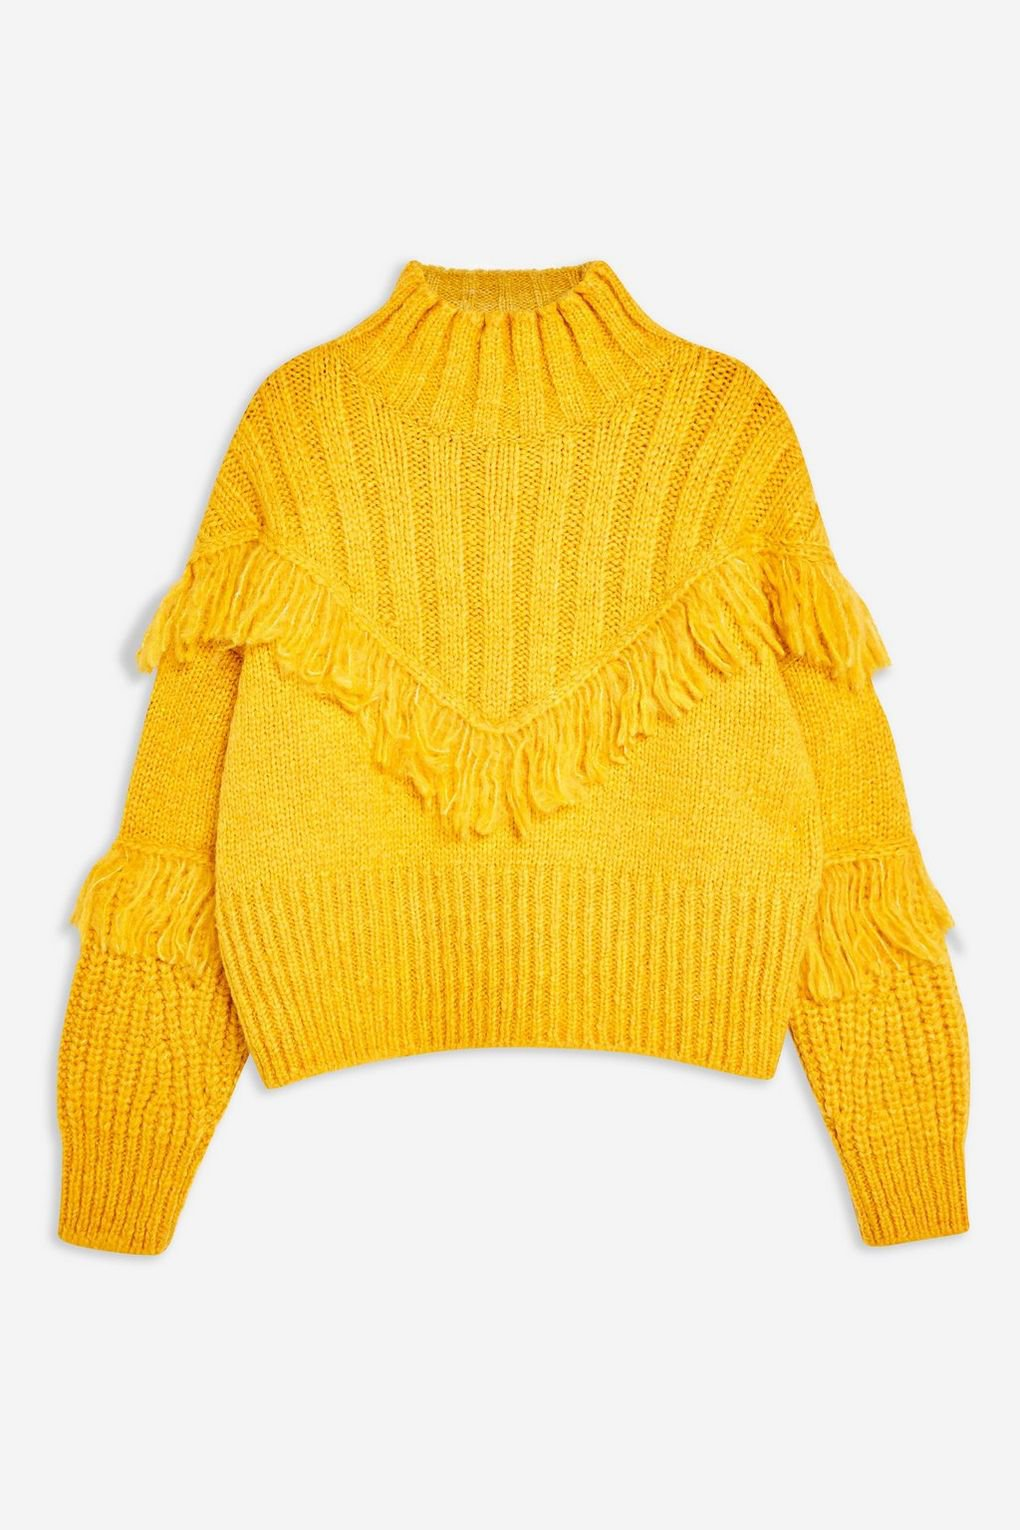 Fringe Funnel Neck Jumper - Sweaters & Knits - Clothing - Topshop USA